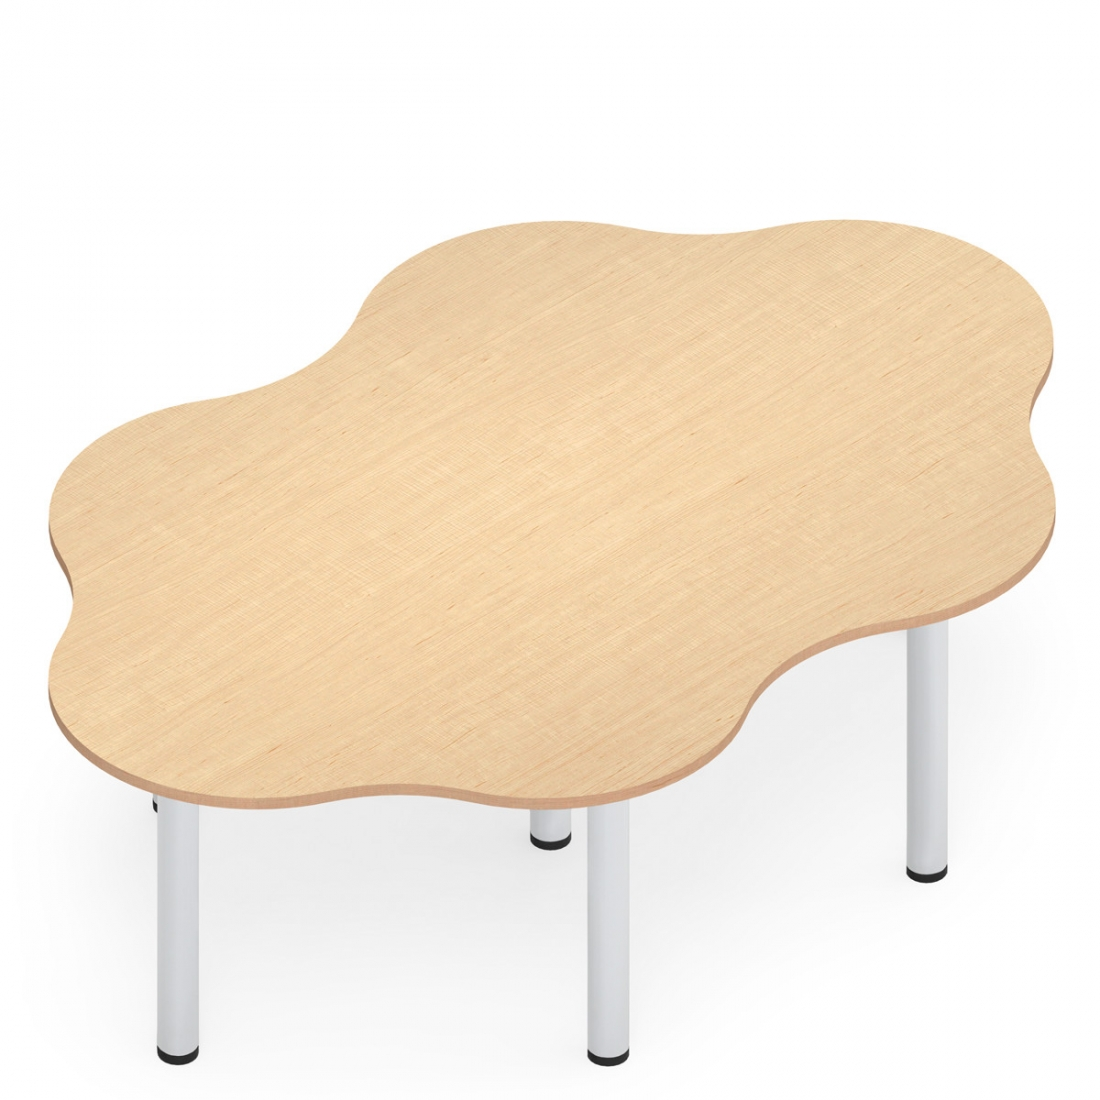 zook 6 person teaming table